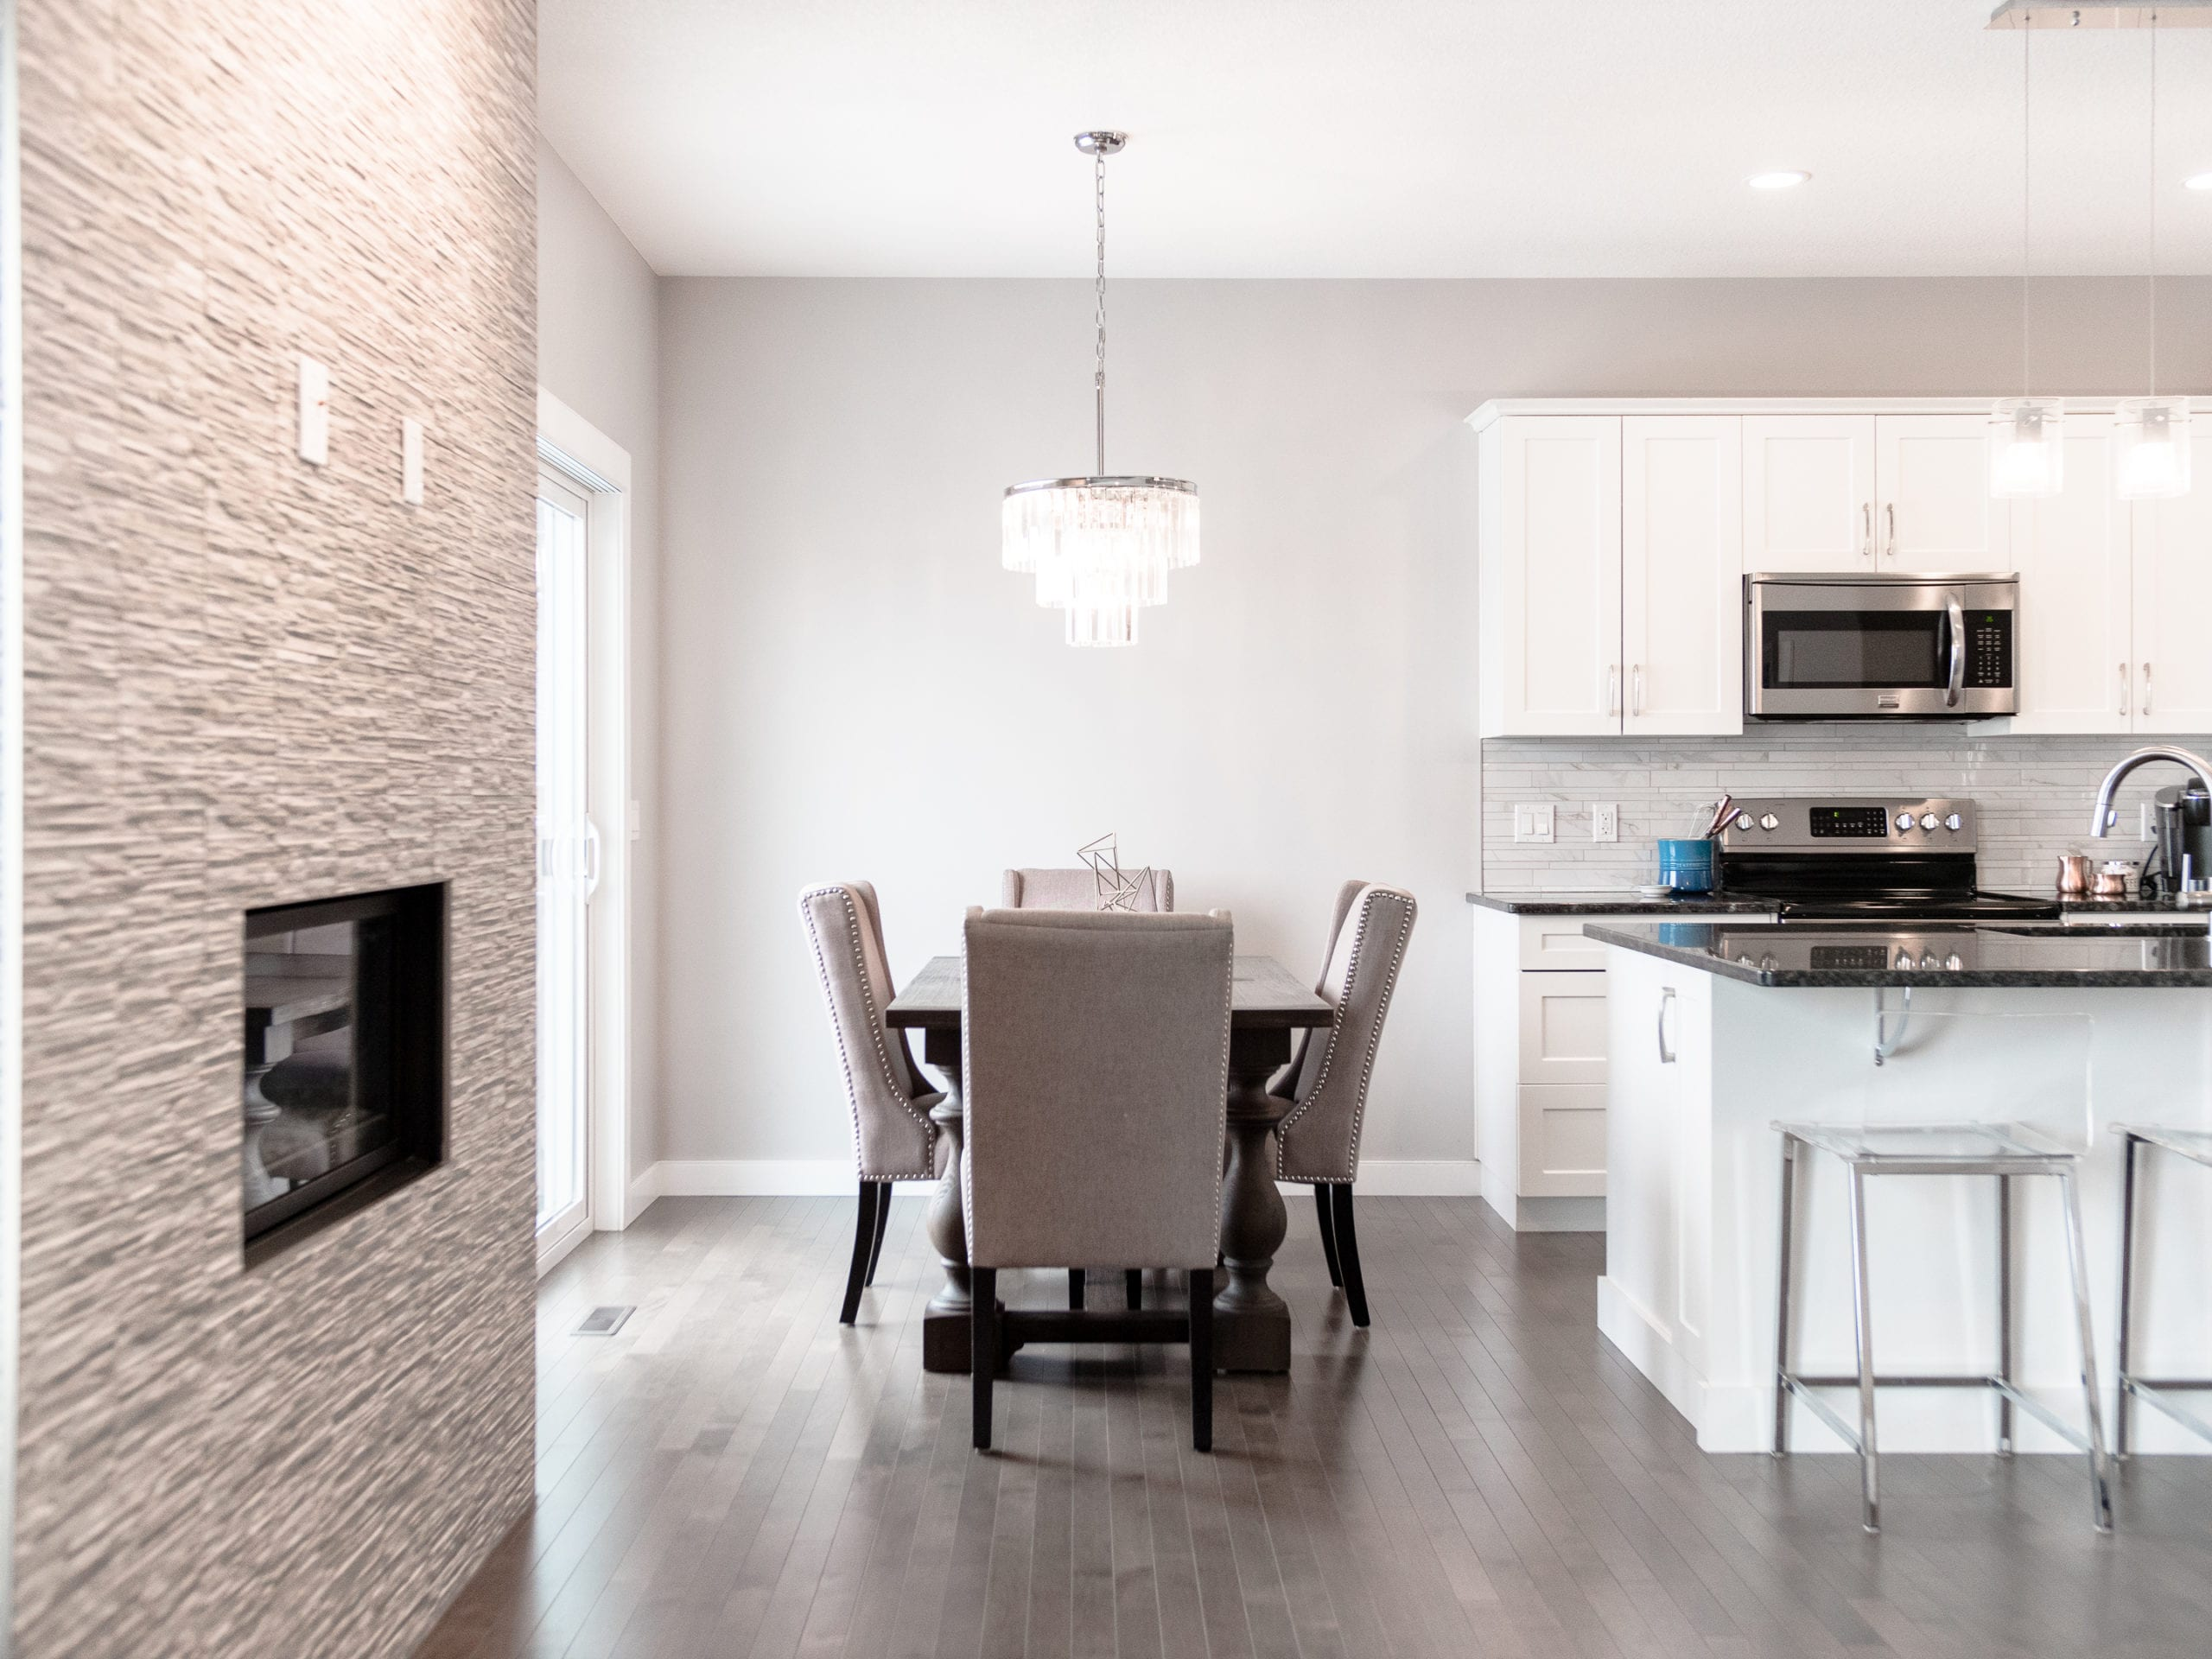 Hello Gorgeous - 1306 Kings Heights Way SE, Airdrie AB. - Tara Molina Real Estate (9 of 53)